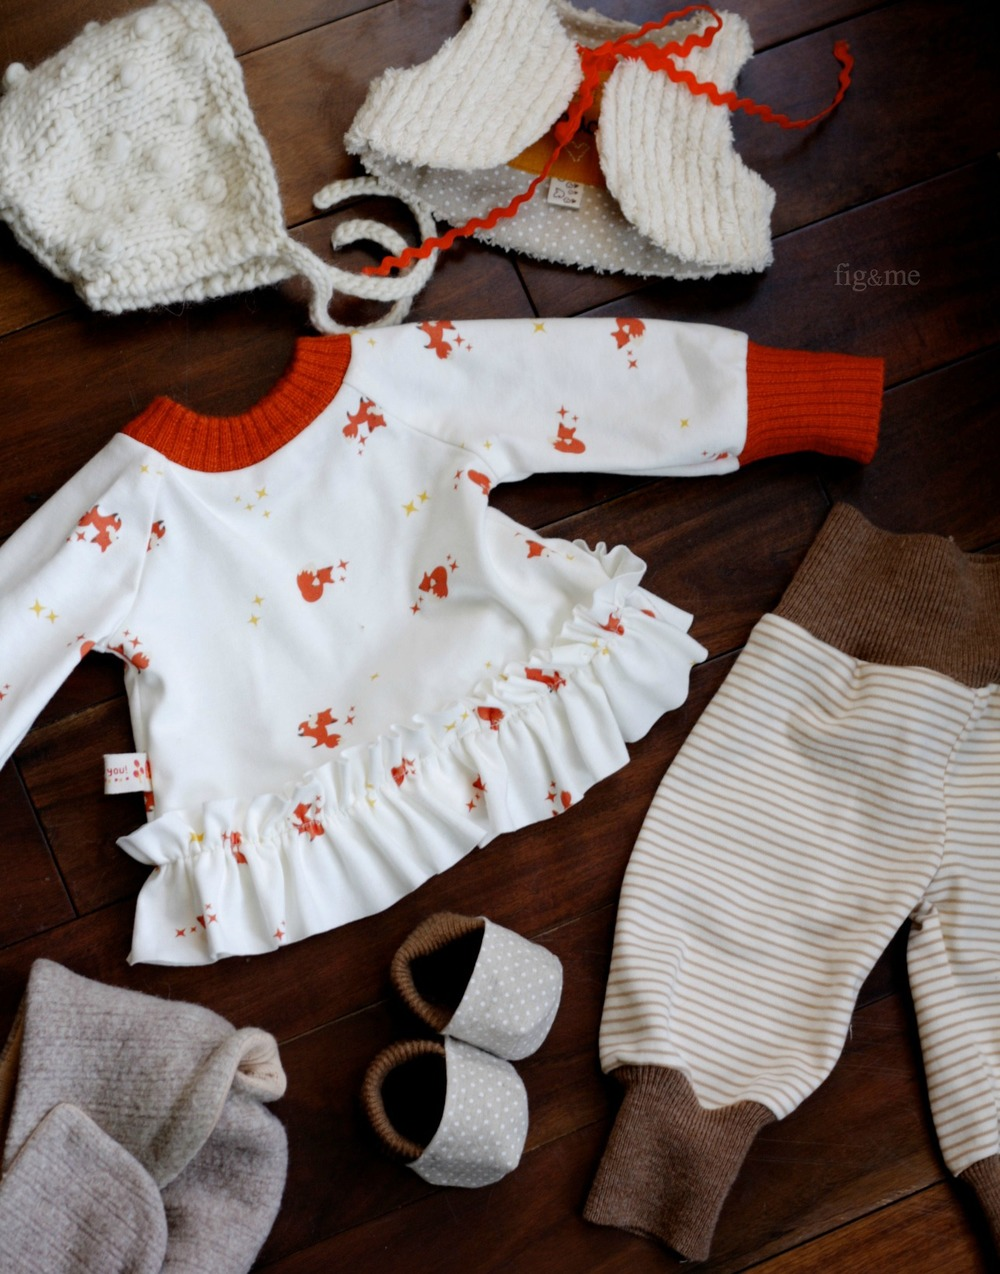 Baby Anjo's clothes, by Fig and Me.